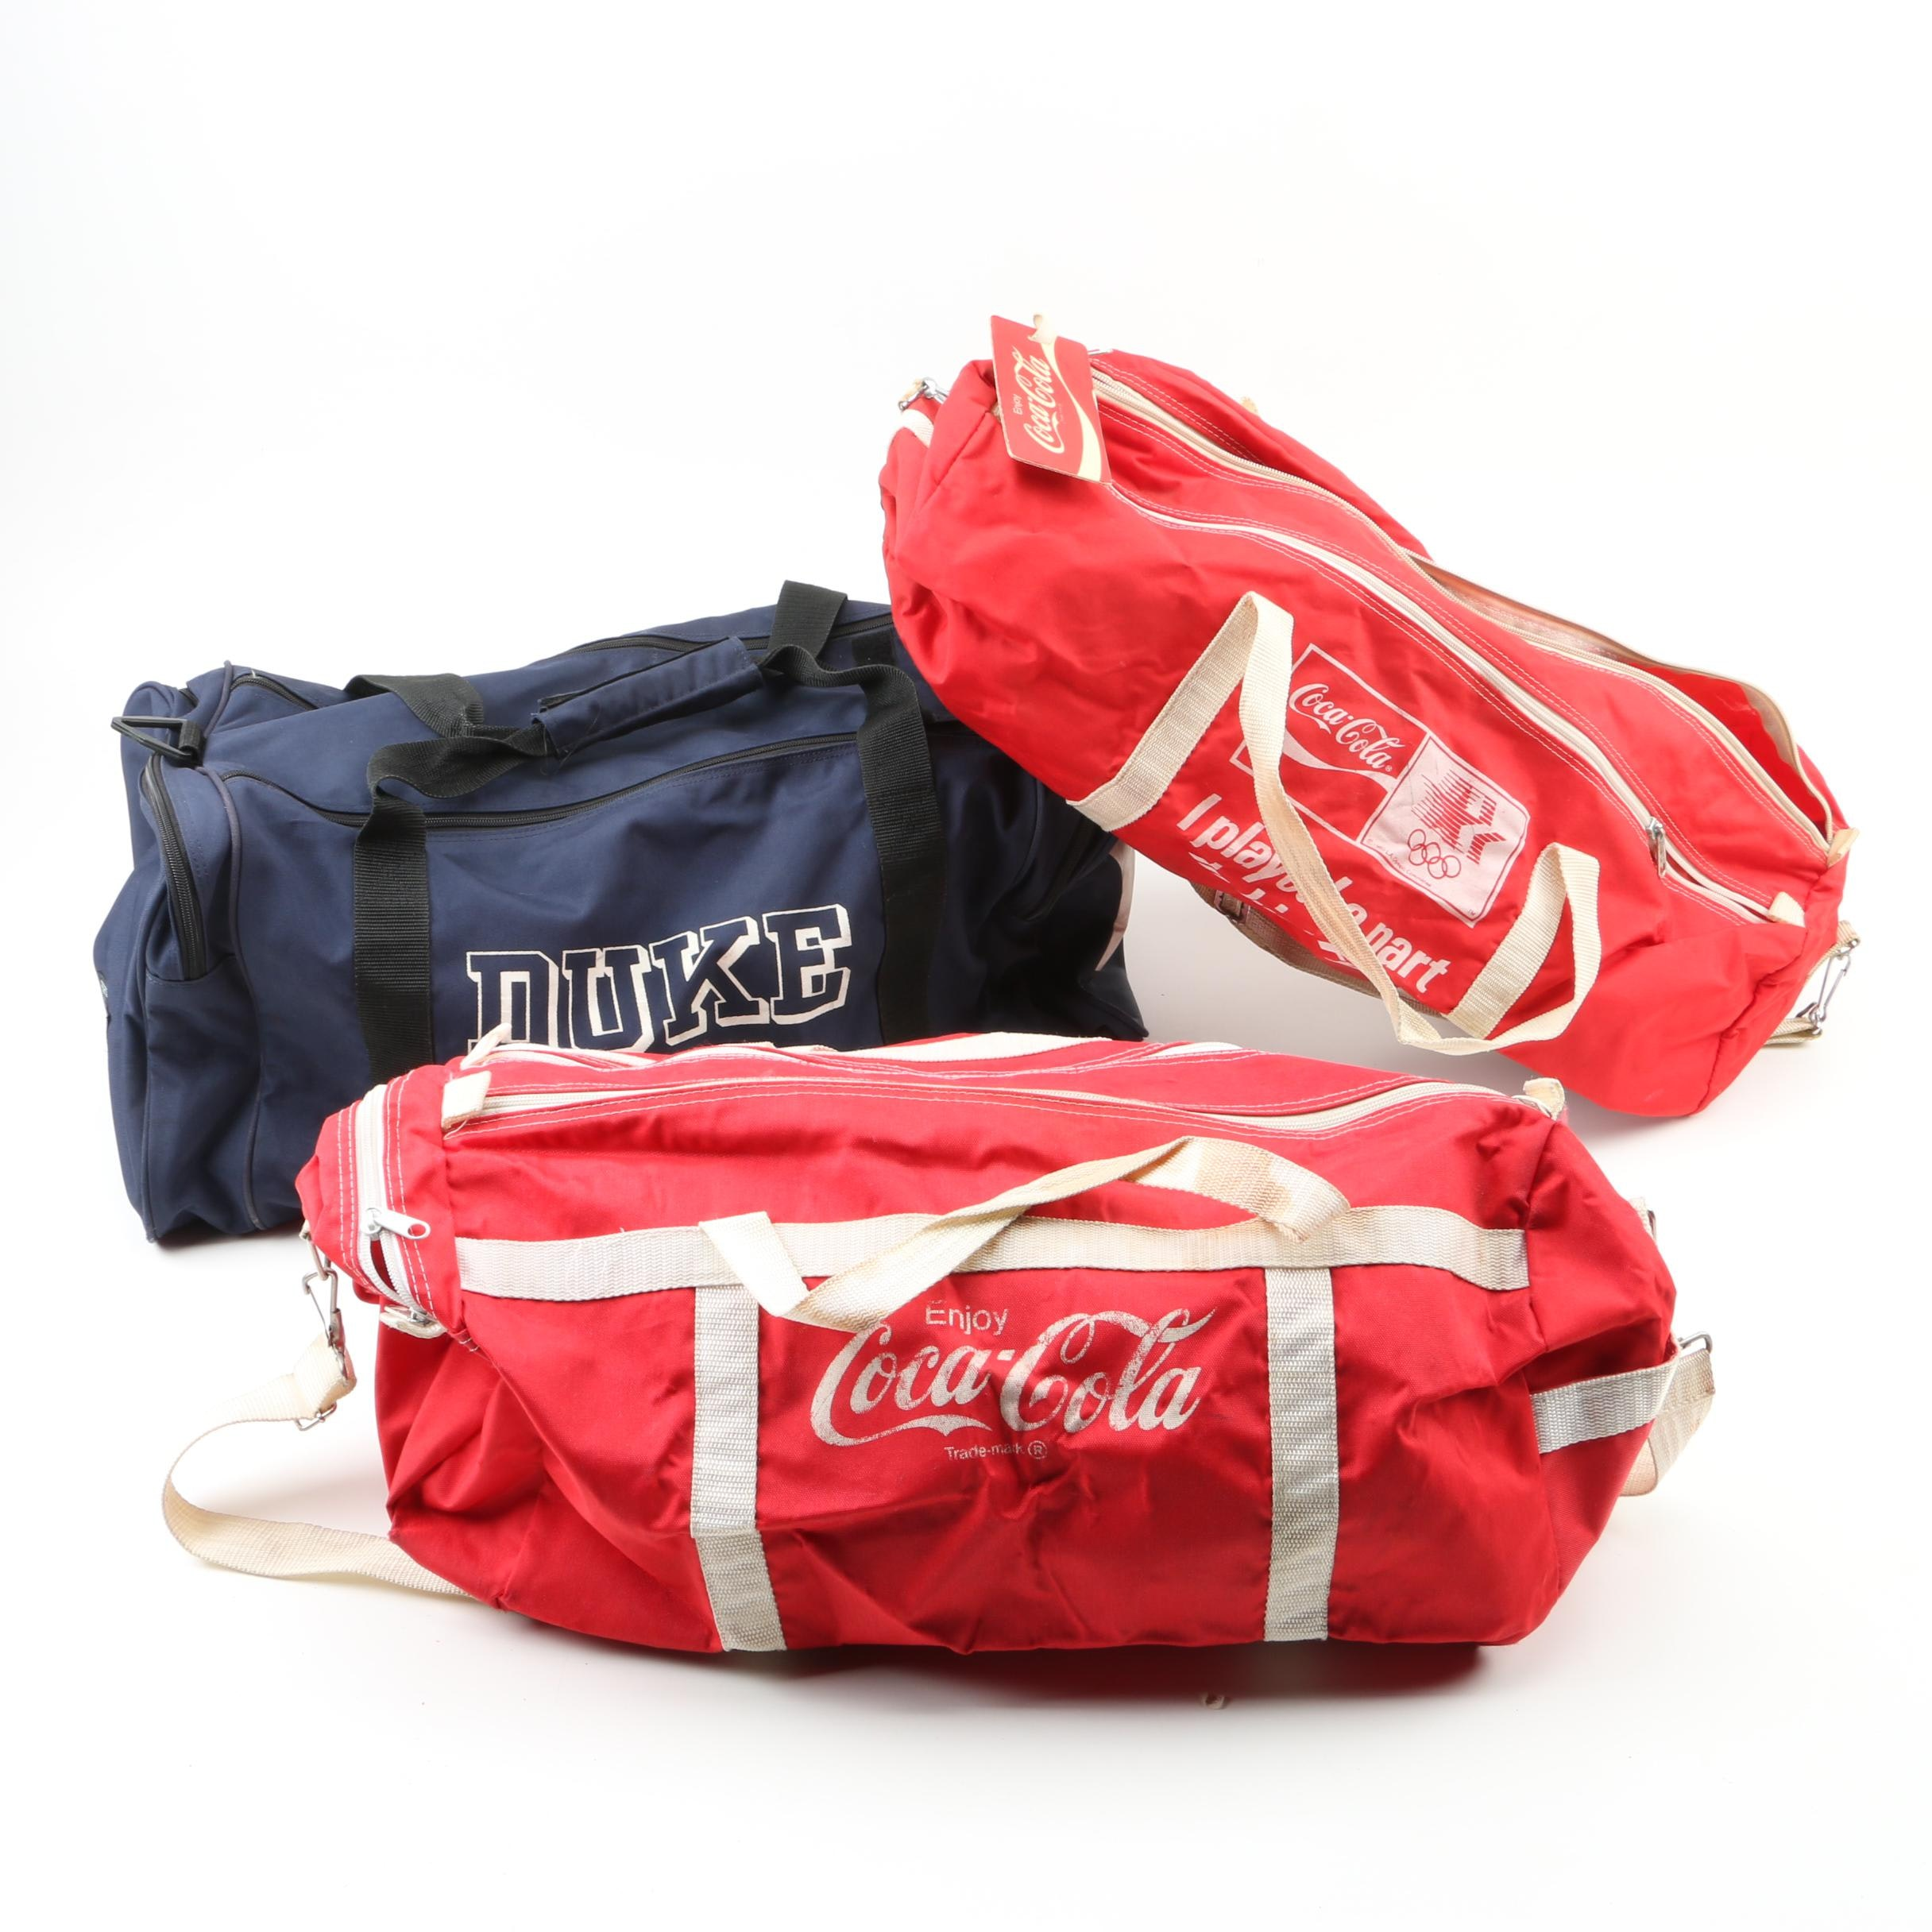 Vintage Coca-Cola and Duke Gym Bags